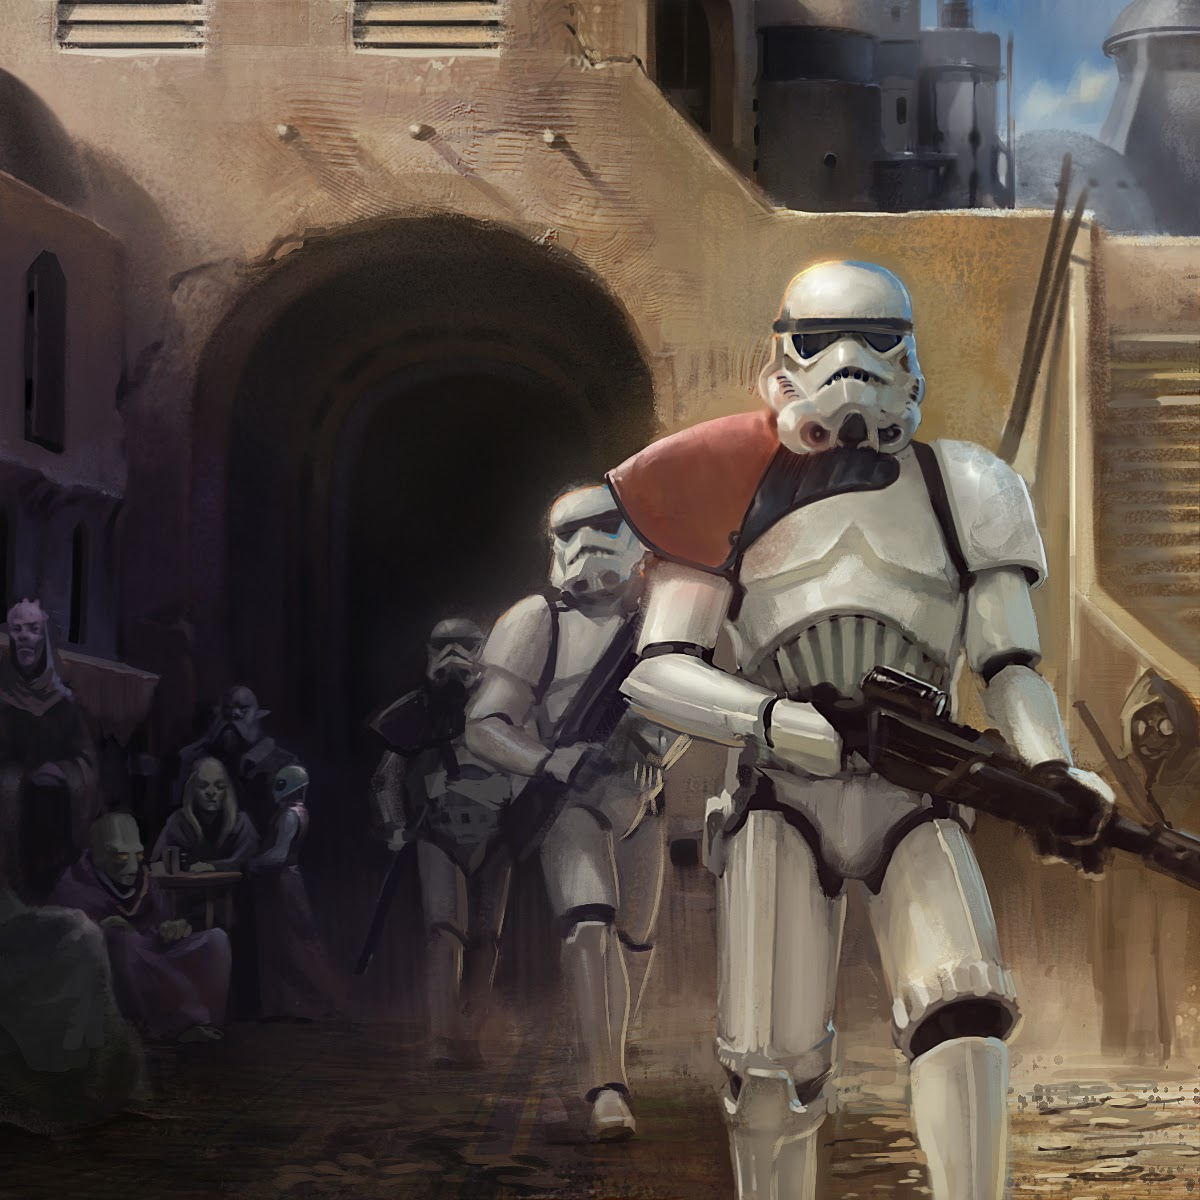 TCG_Garrison_at_Tatooine_by_Chase_Toole.